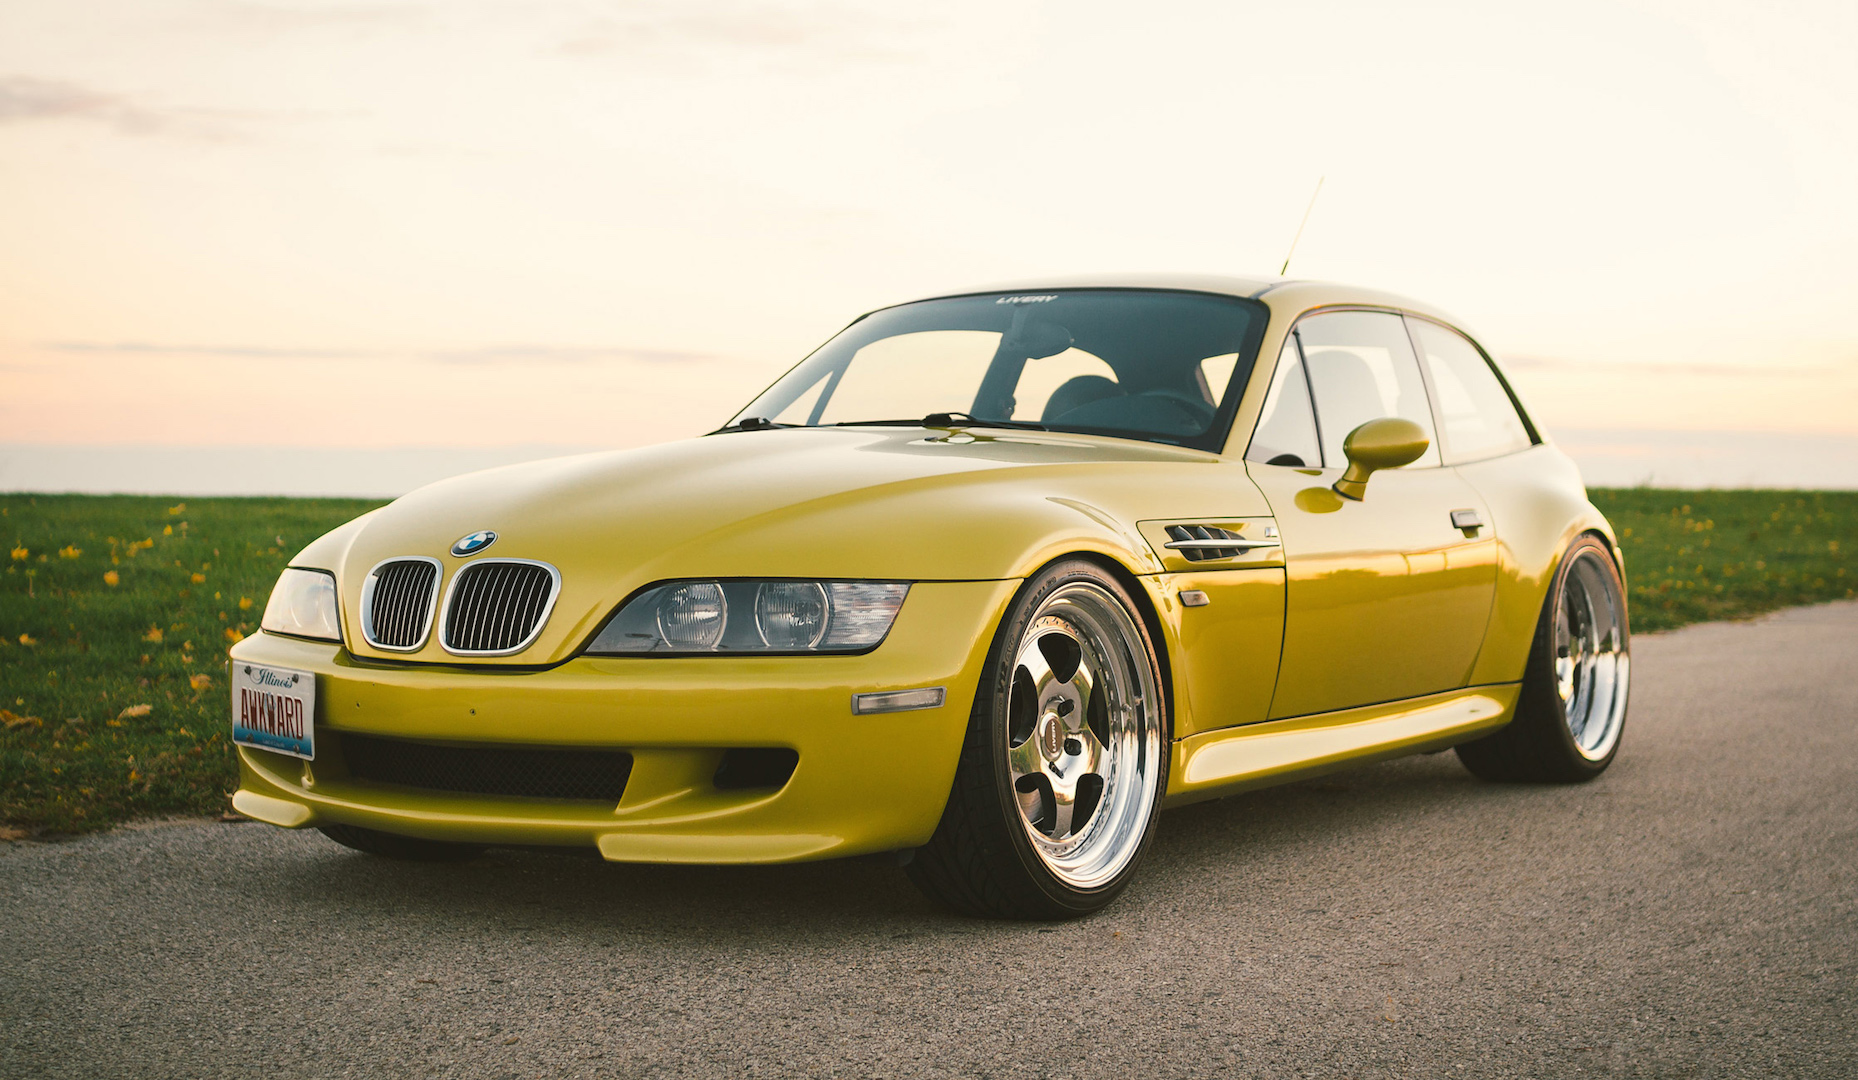 Phoenix Yellow Z3M S54 Coupe – Tasteful Mods and Solid Maintenance